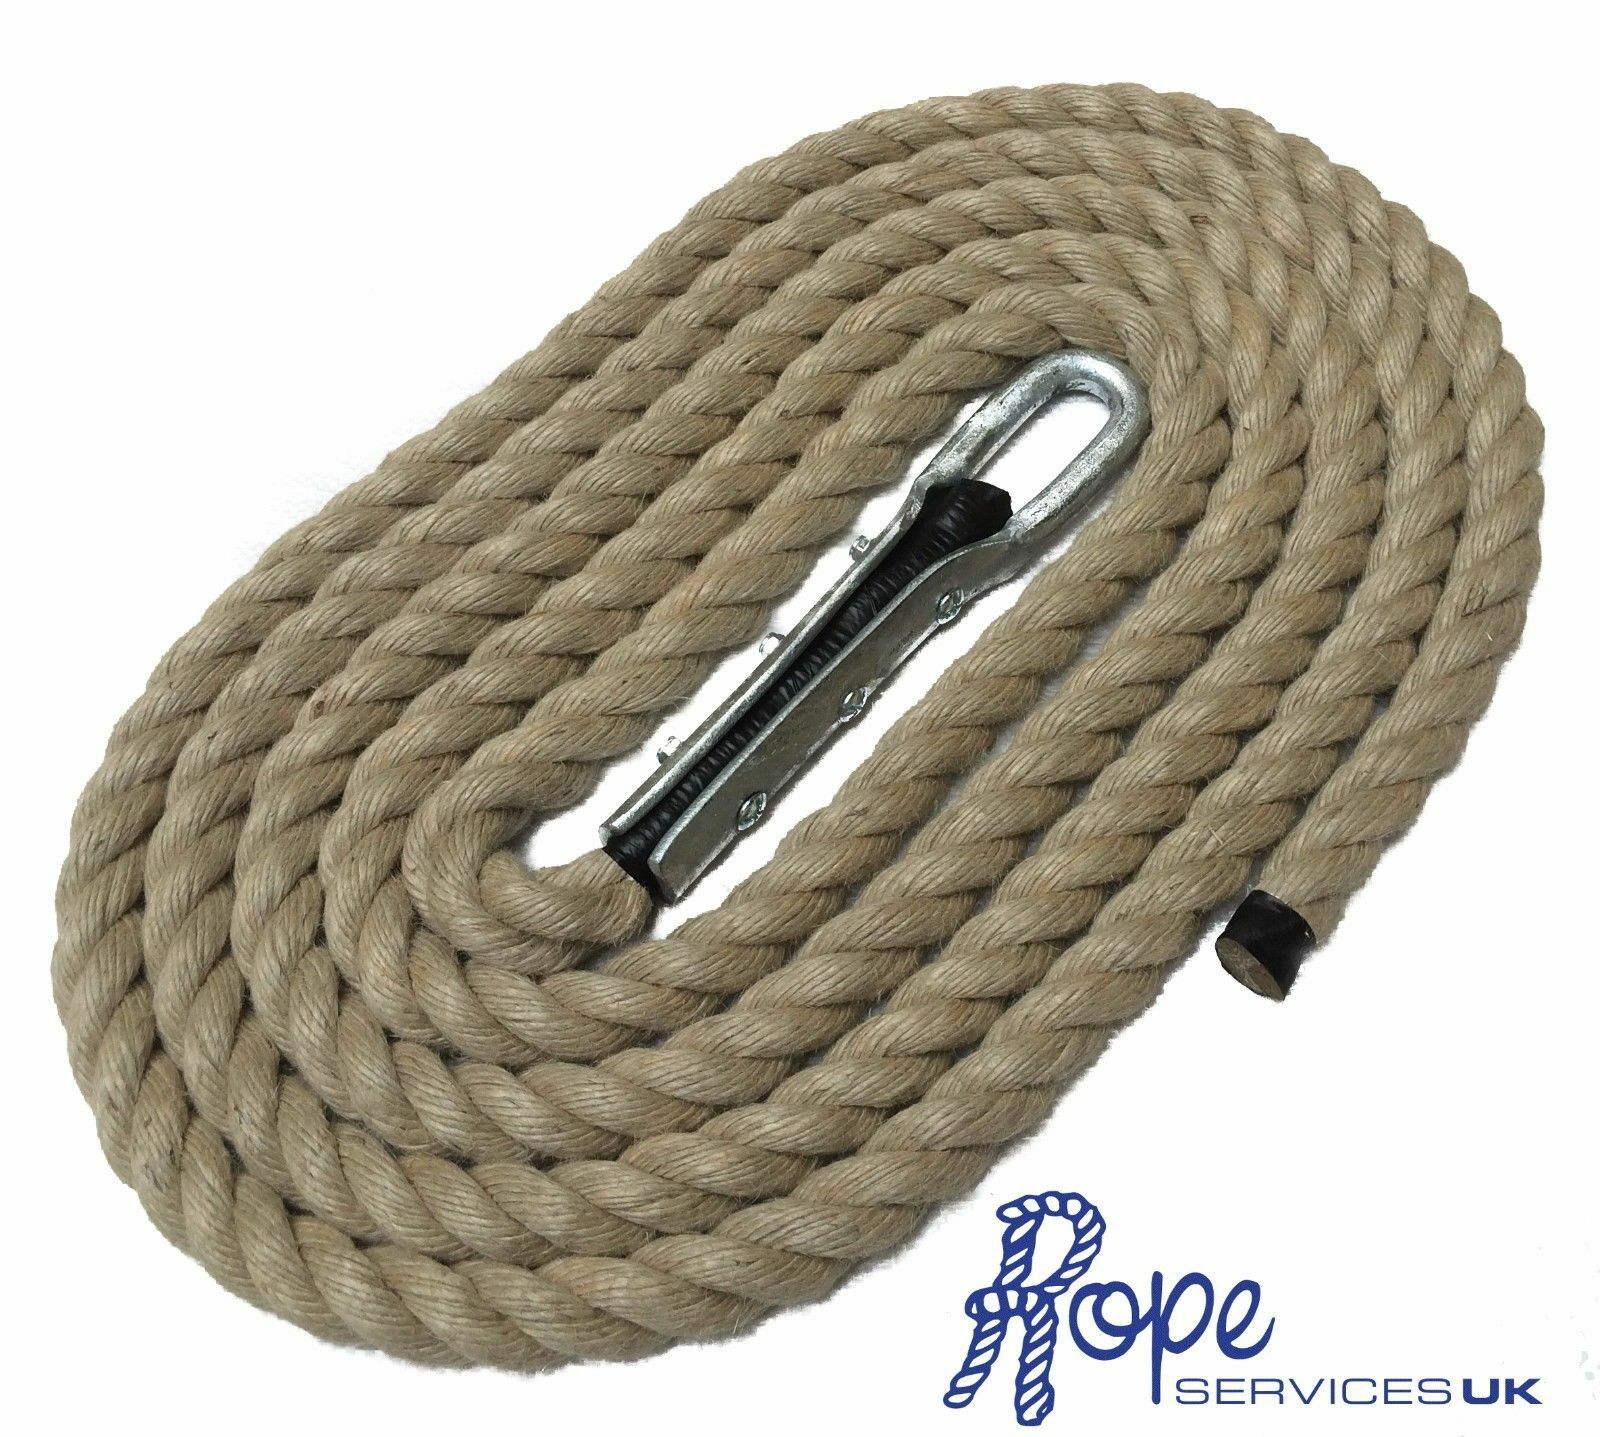 28mm Natural Gym Rope x 5 Metres, Climbing Ropes, Stiefelcamps, Tulip Fitting